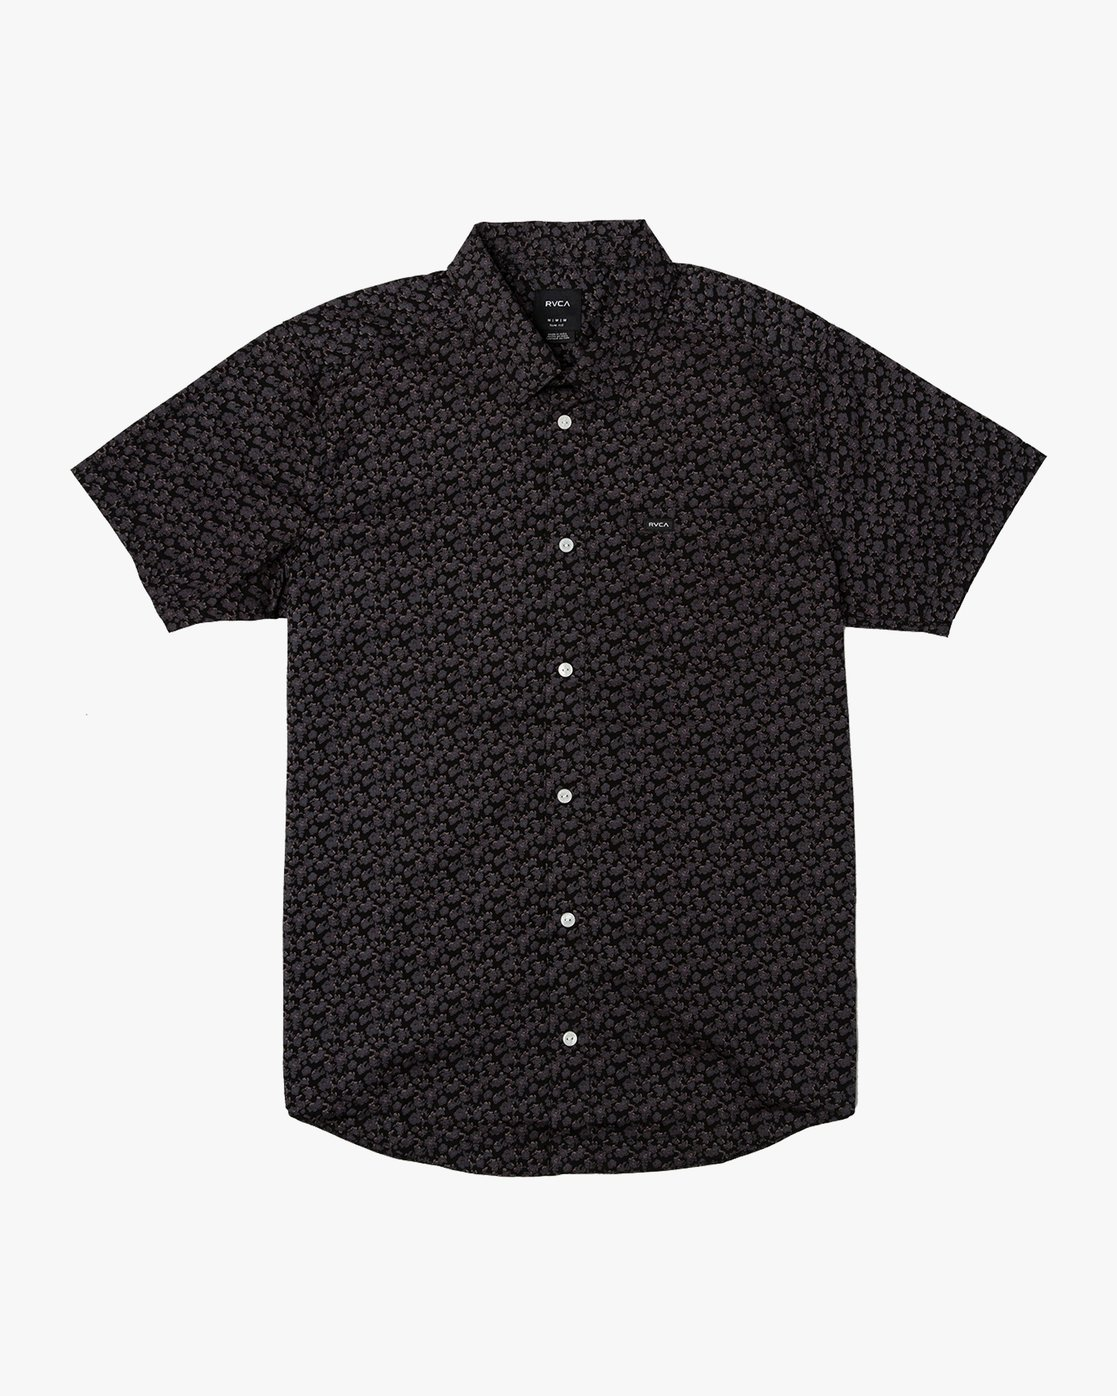 0 Porcelain Printed Short Sleeve Shirt Black MK507POR RVCA